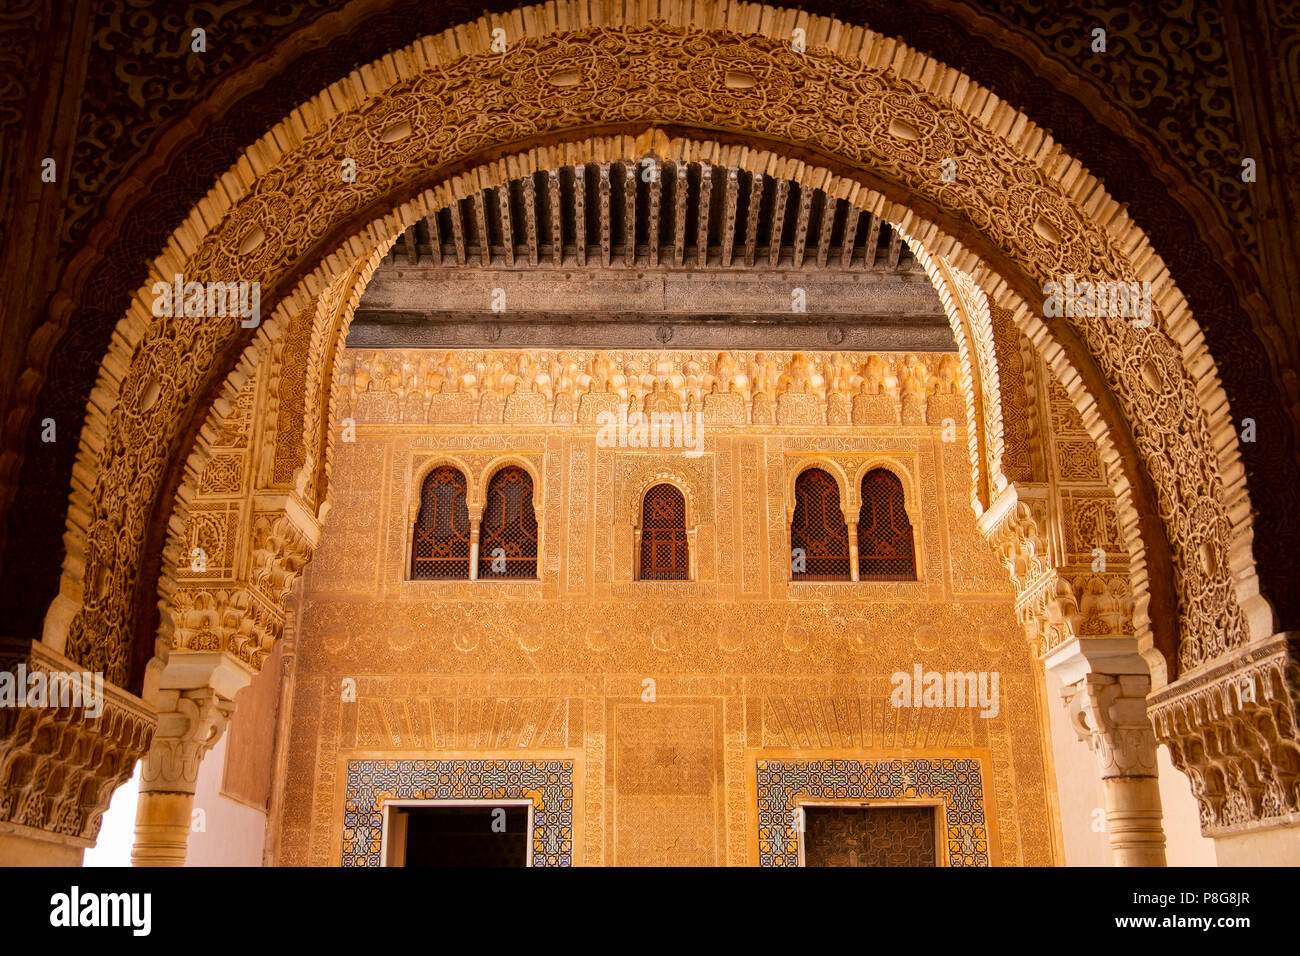 Palacios Nazaries. Nasrid Palace. Alhambra, UNESCO World Heritage Site. Granada City. Andalusia, Southern Spain Europe Stock Photo